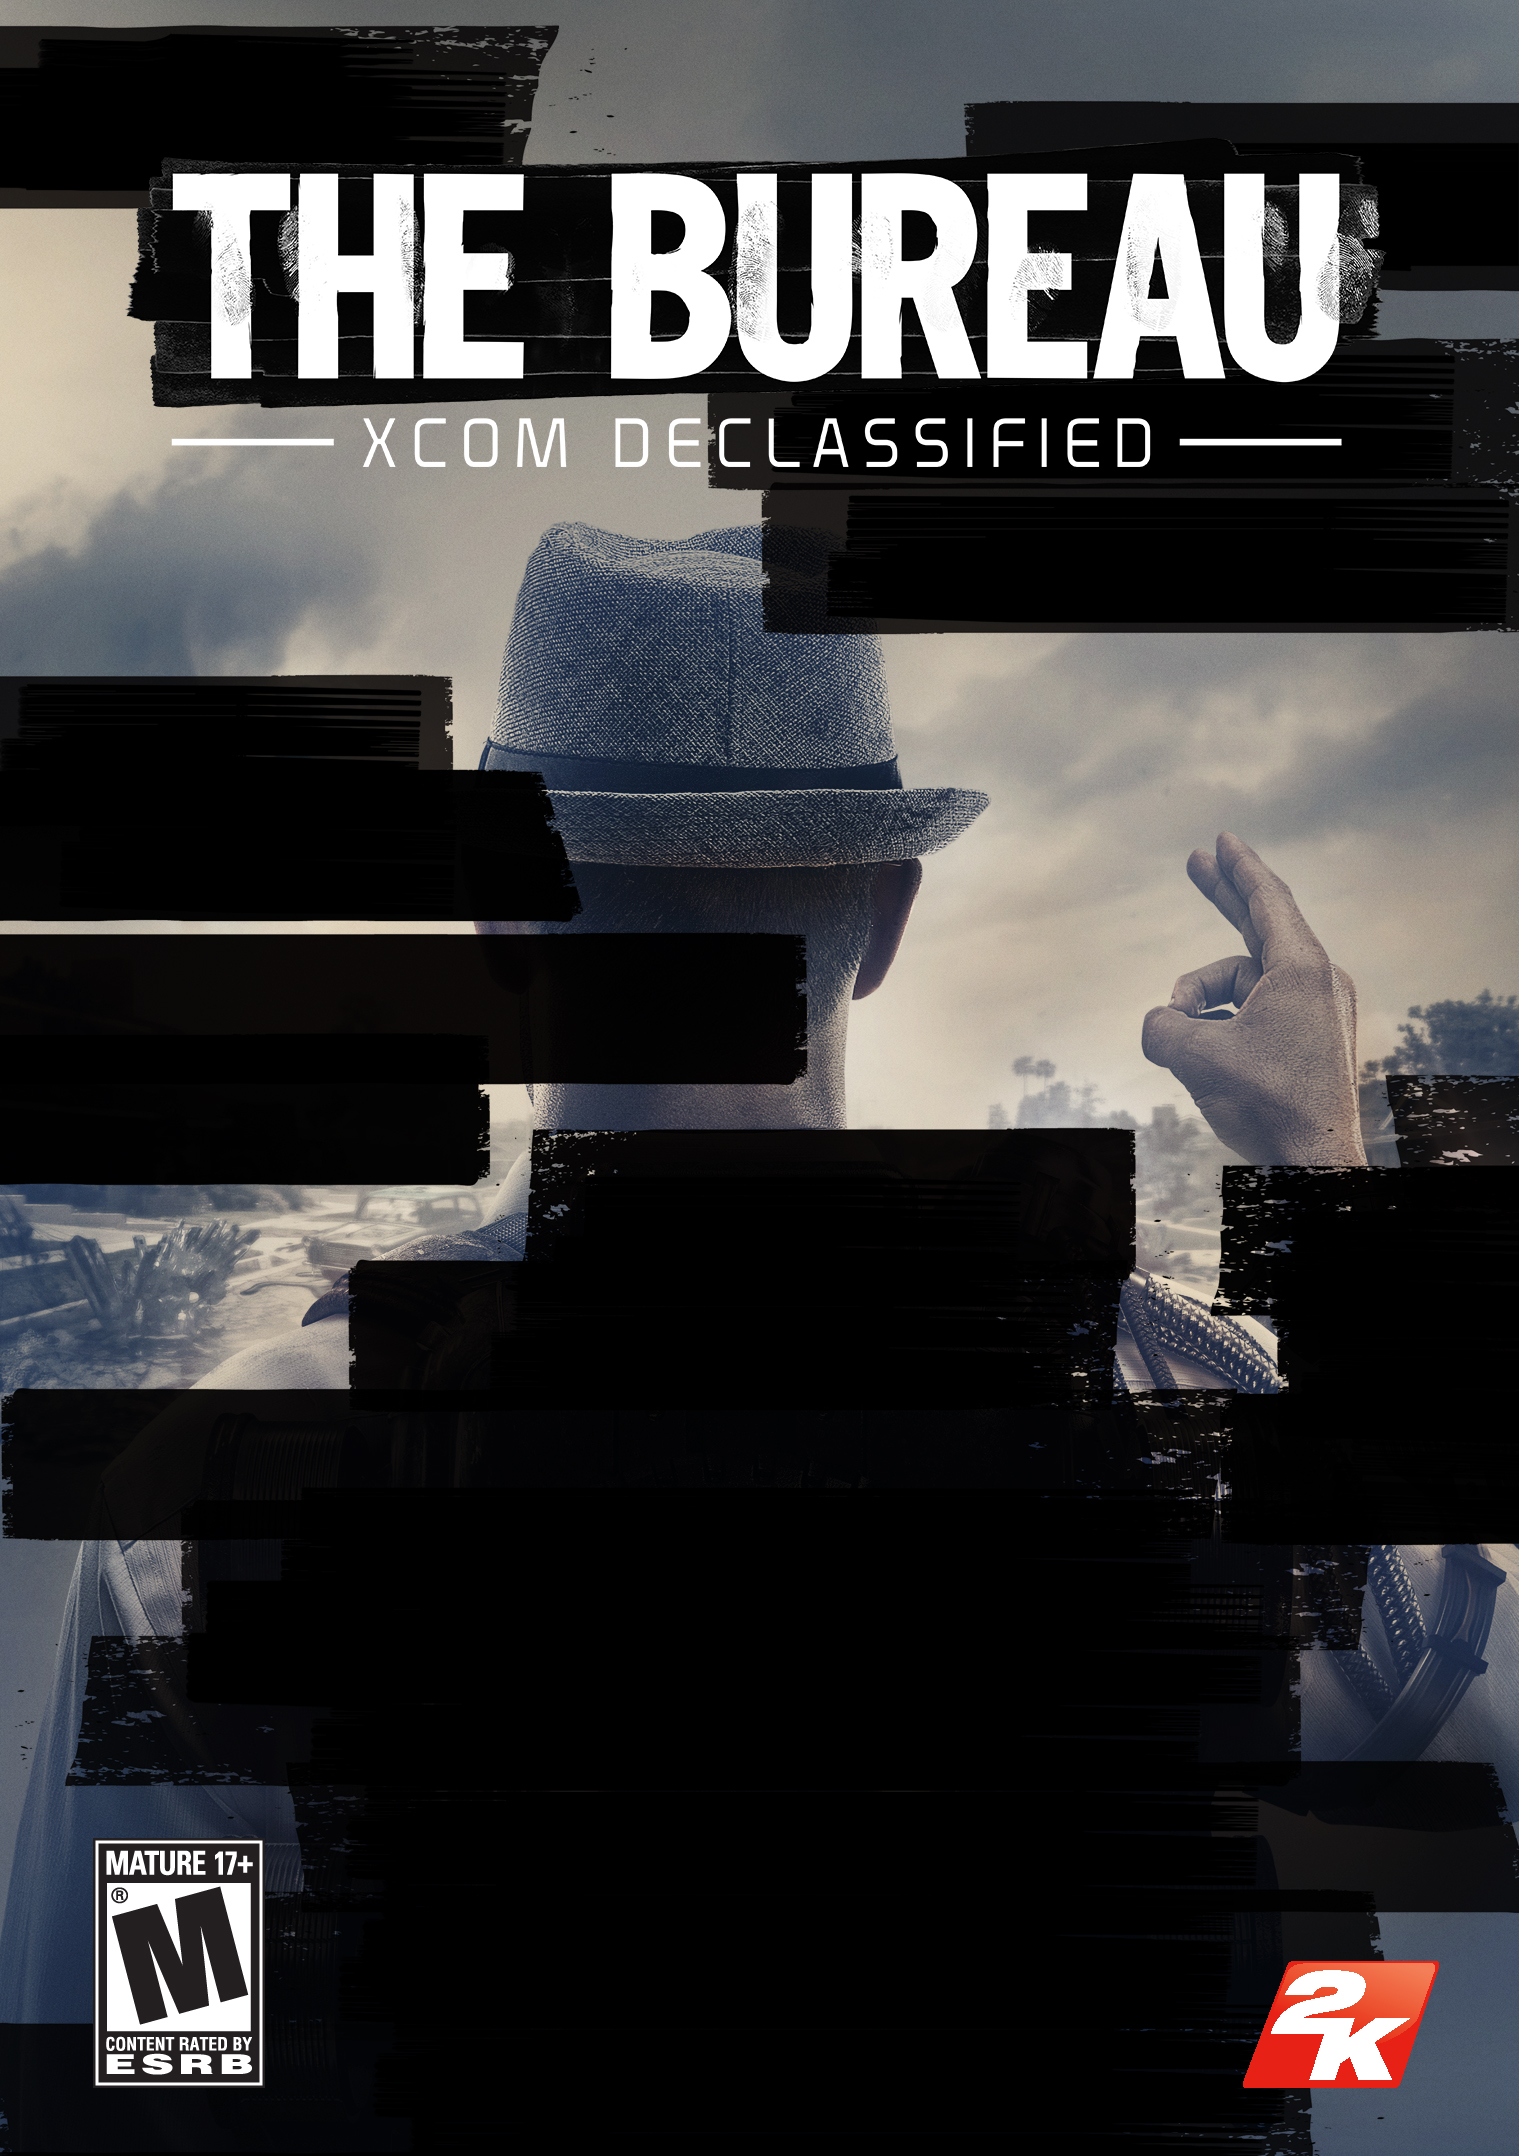 The bureau xcom declassified game review the short gamer for Bureau xcom declassified review